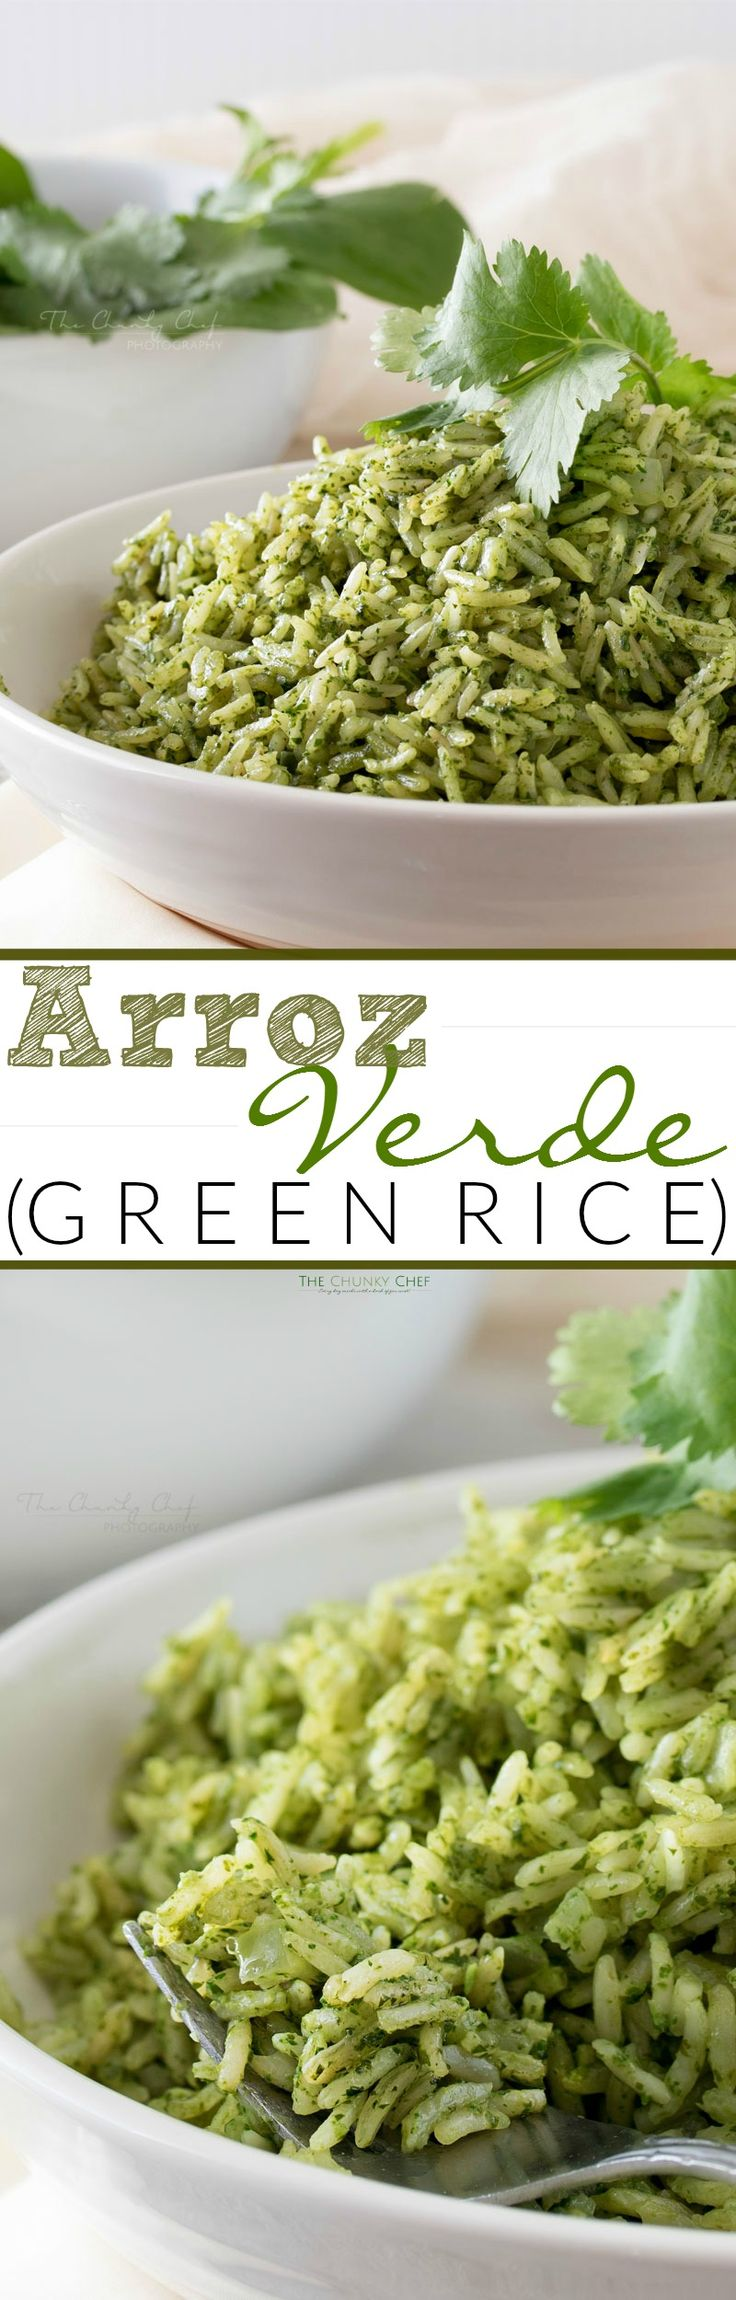 Arroz Verde Green Rice | This green rice, or arroz verde, is so rich and full of flavor... not to mention the vibrant green color! You can pair this rice with any main dish! | http://thechunkychef.com